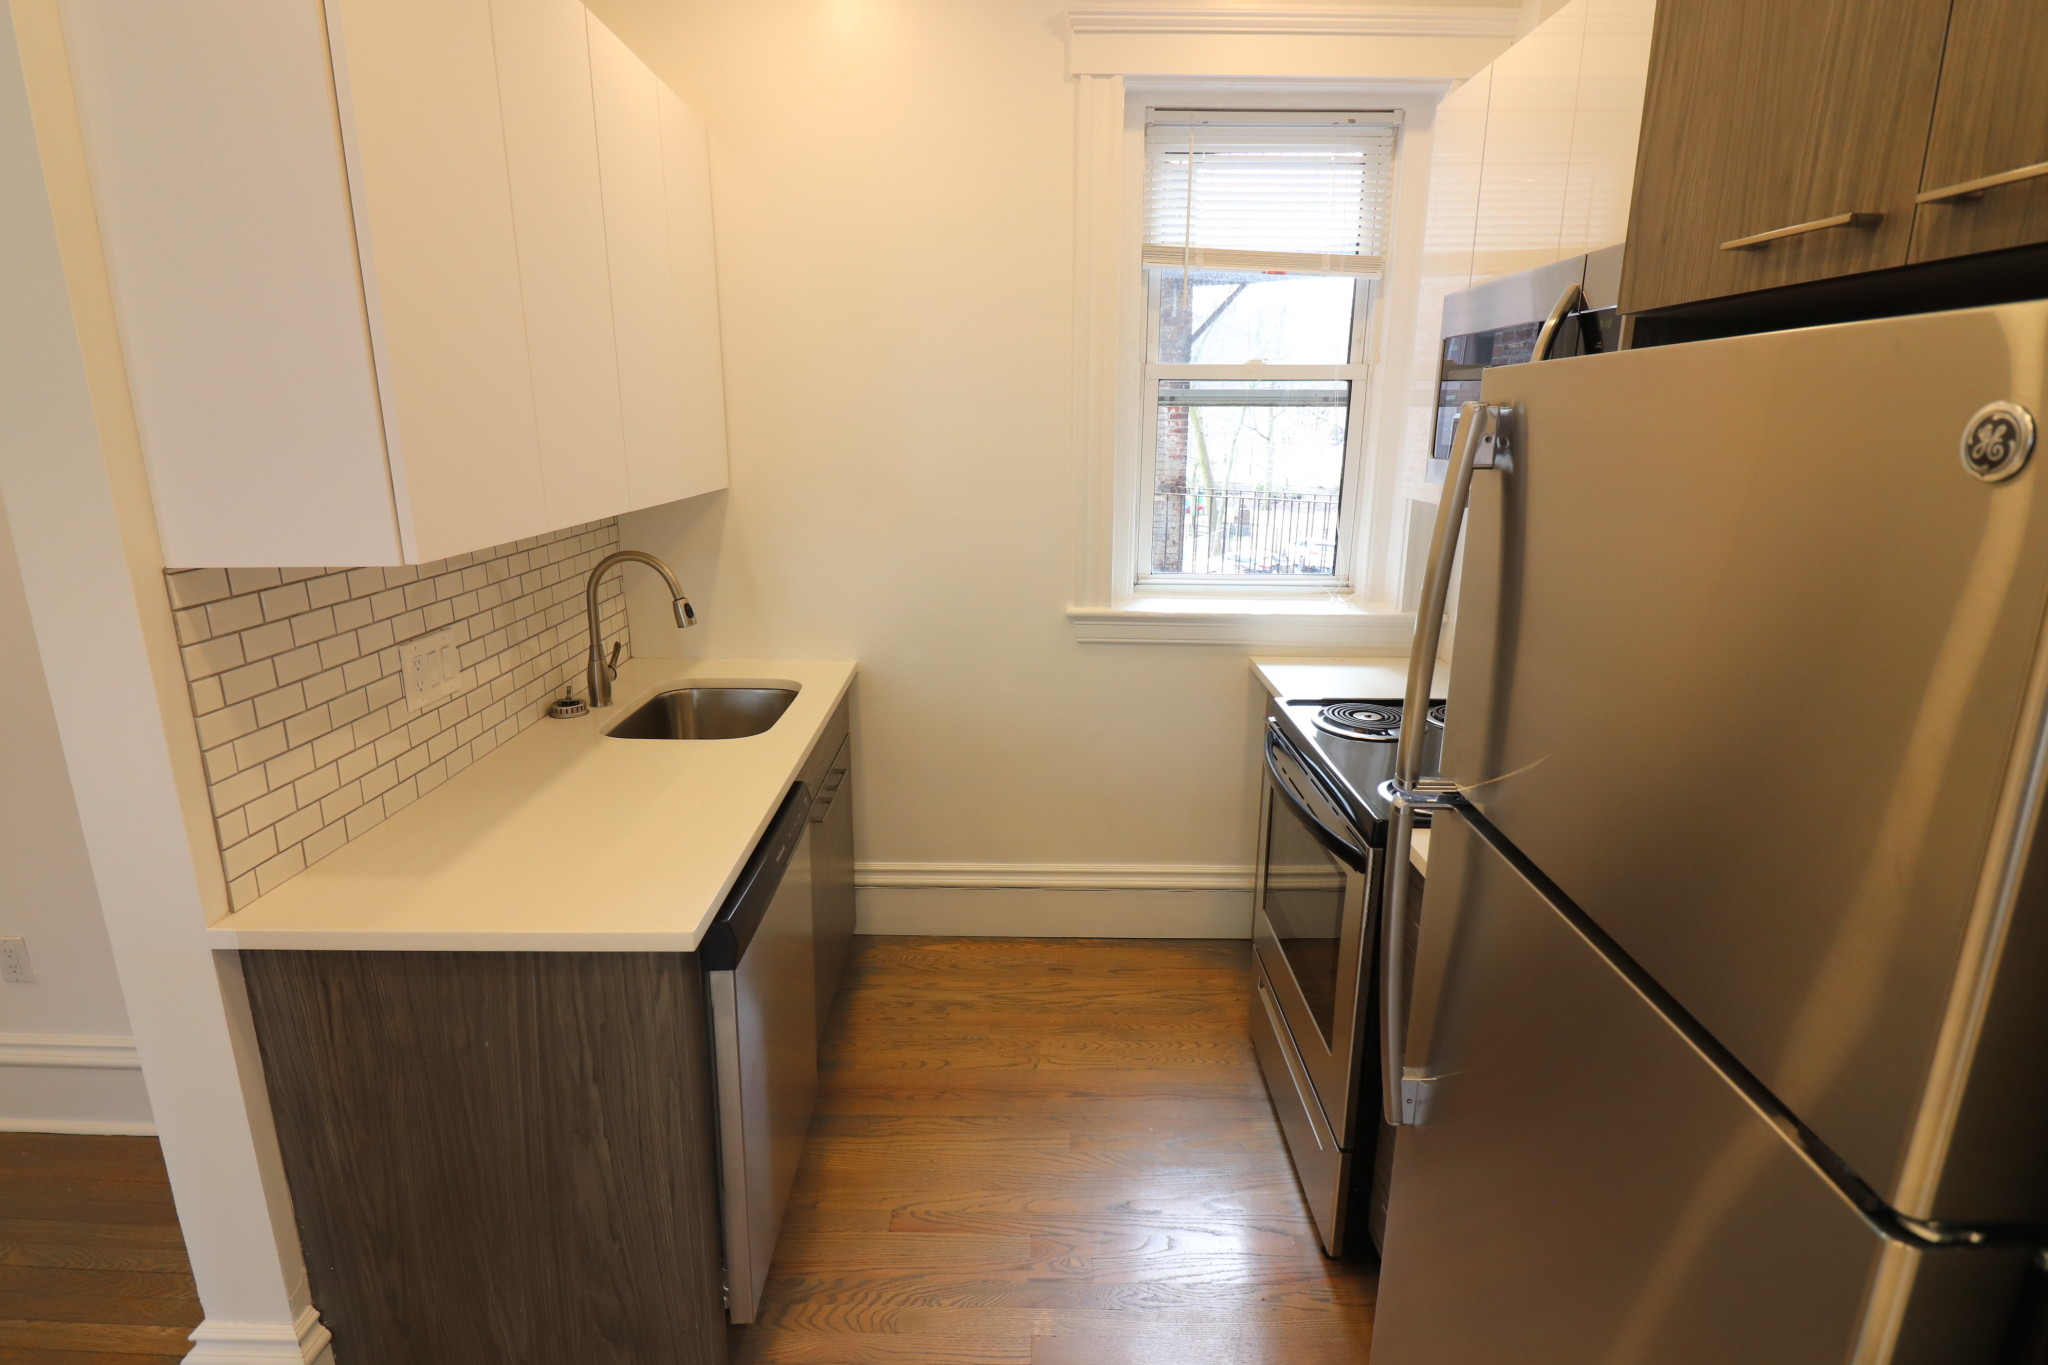 Photo 10 for Queensberry St.